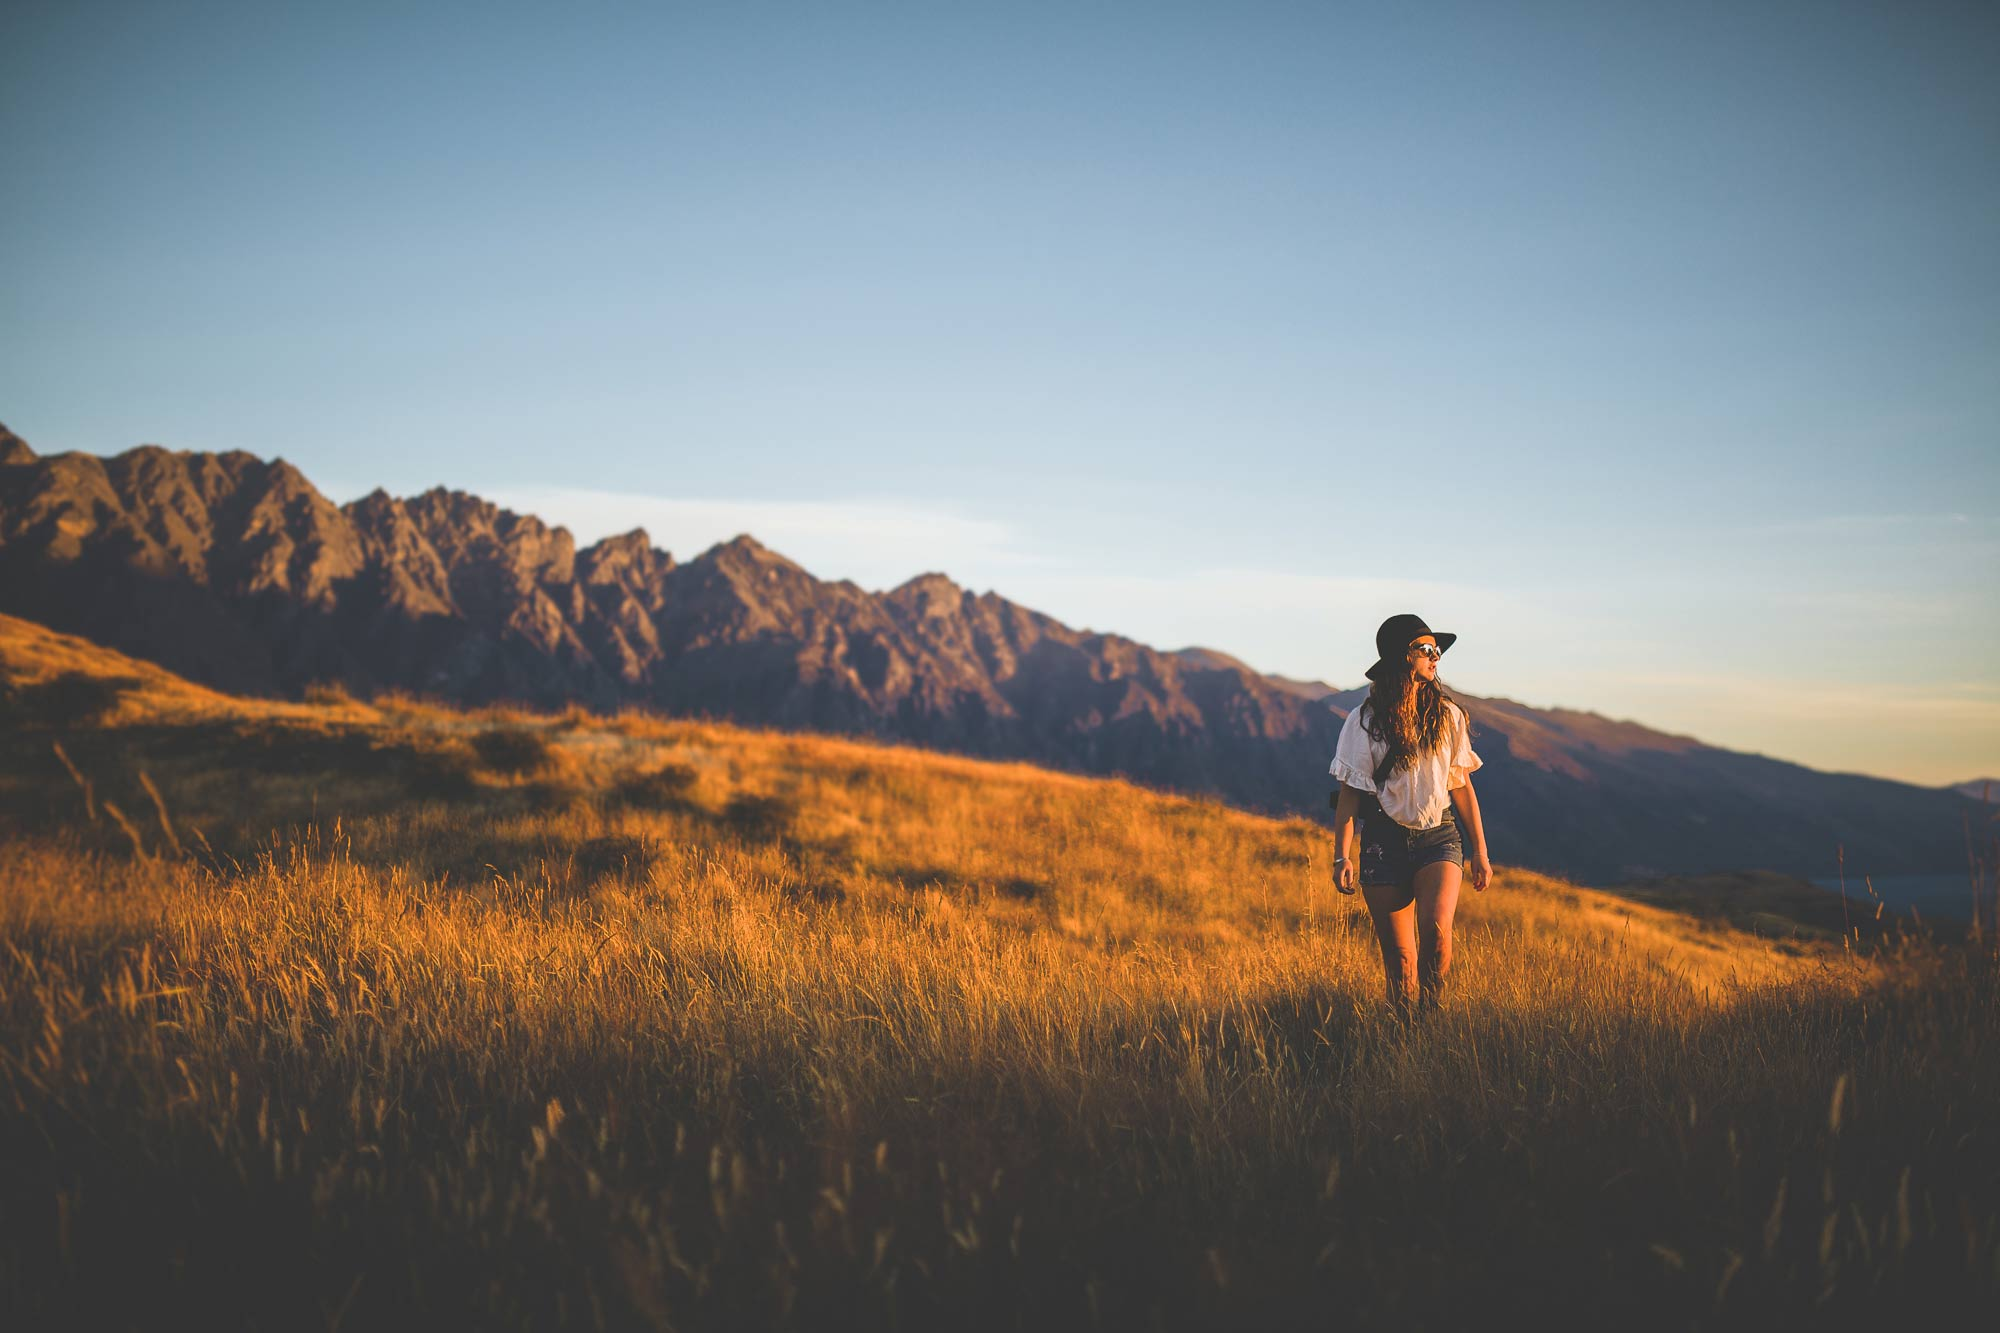 Maddi wandering underneath The remarkables in Queenstown